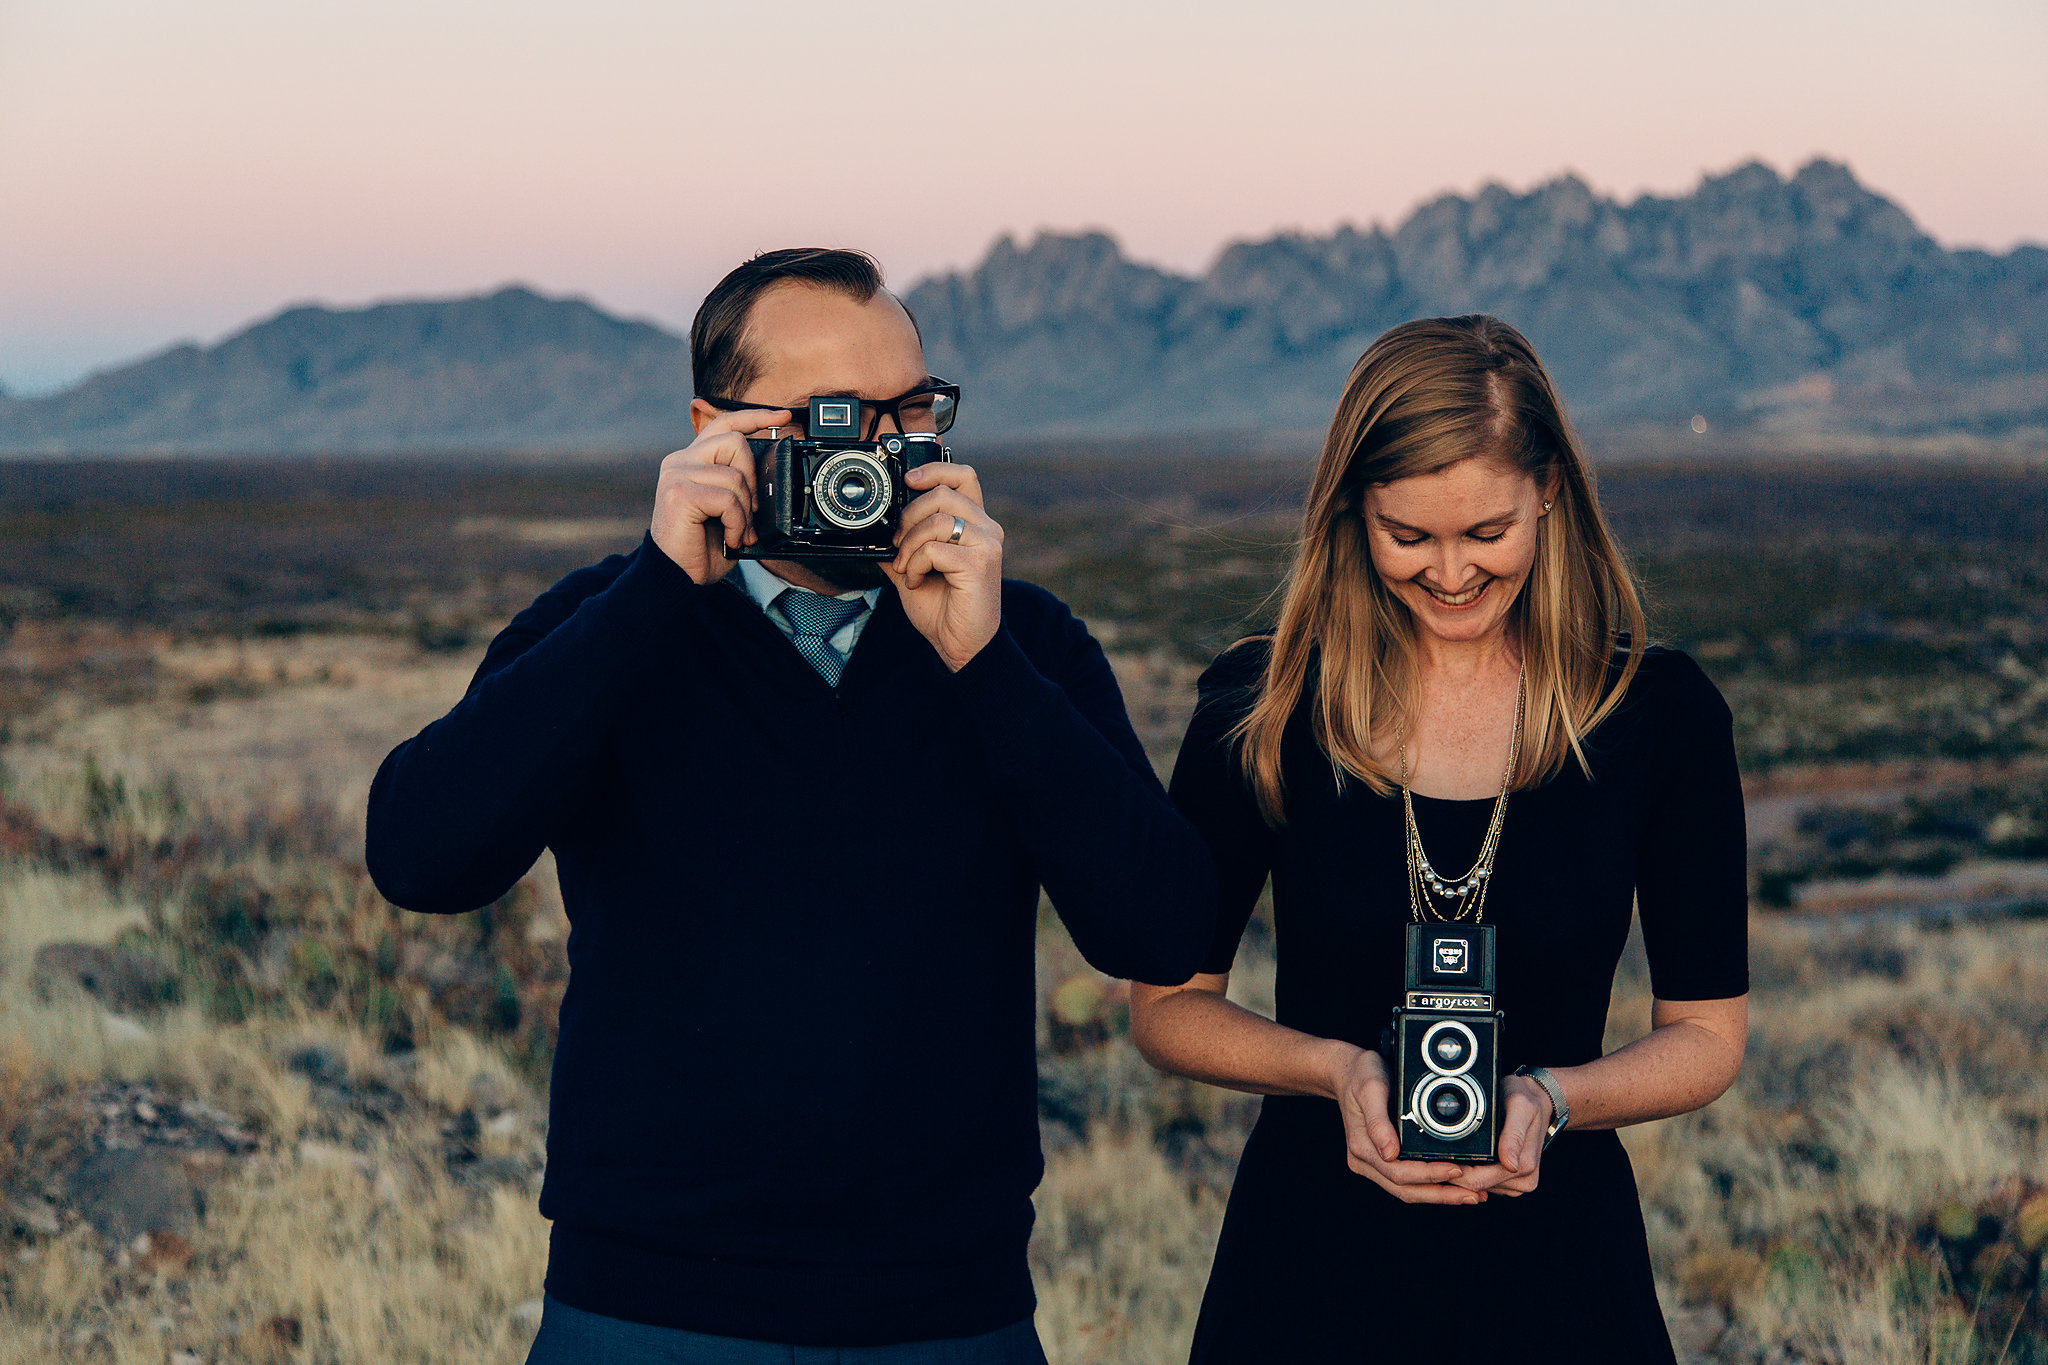 Nate and Elise Taylor, Founders of Taylor'd Photography